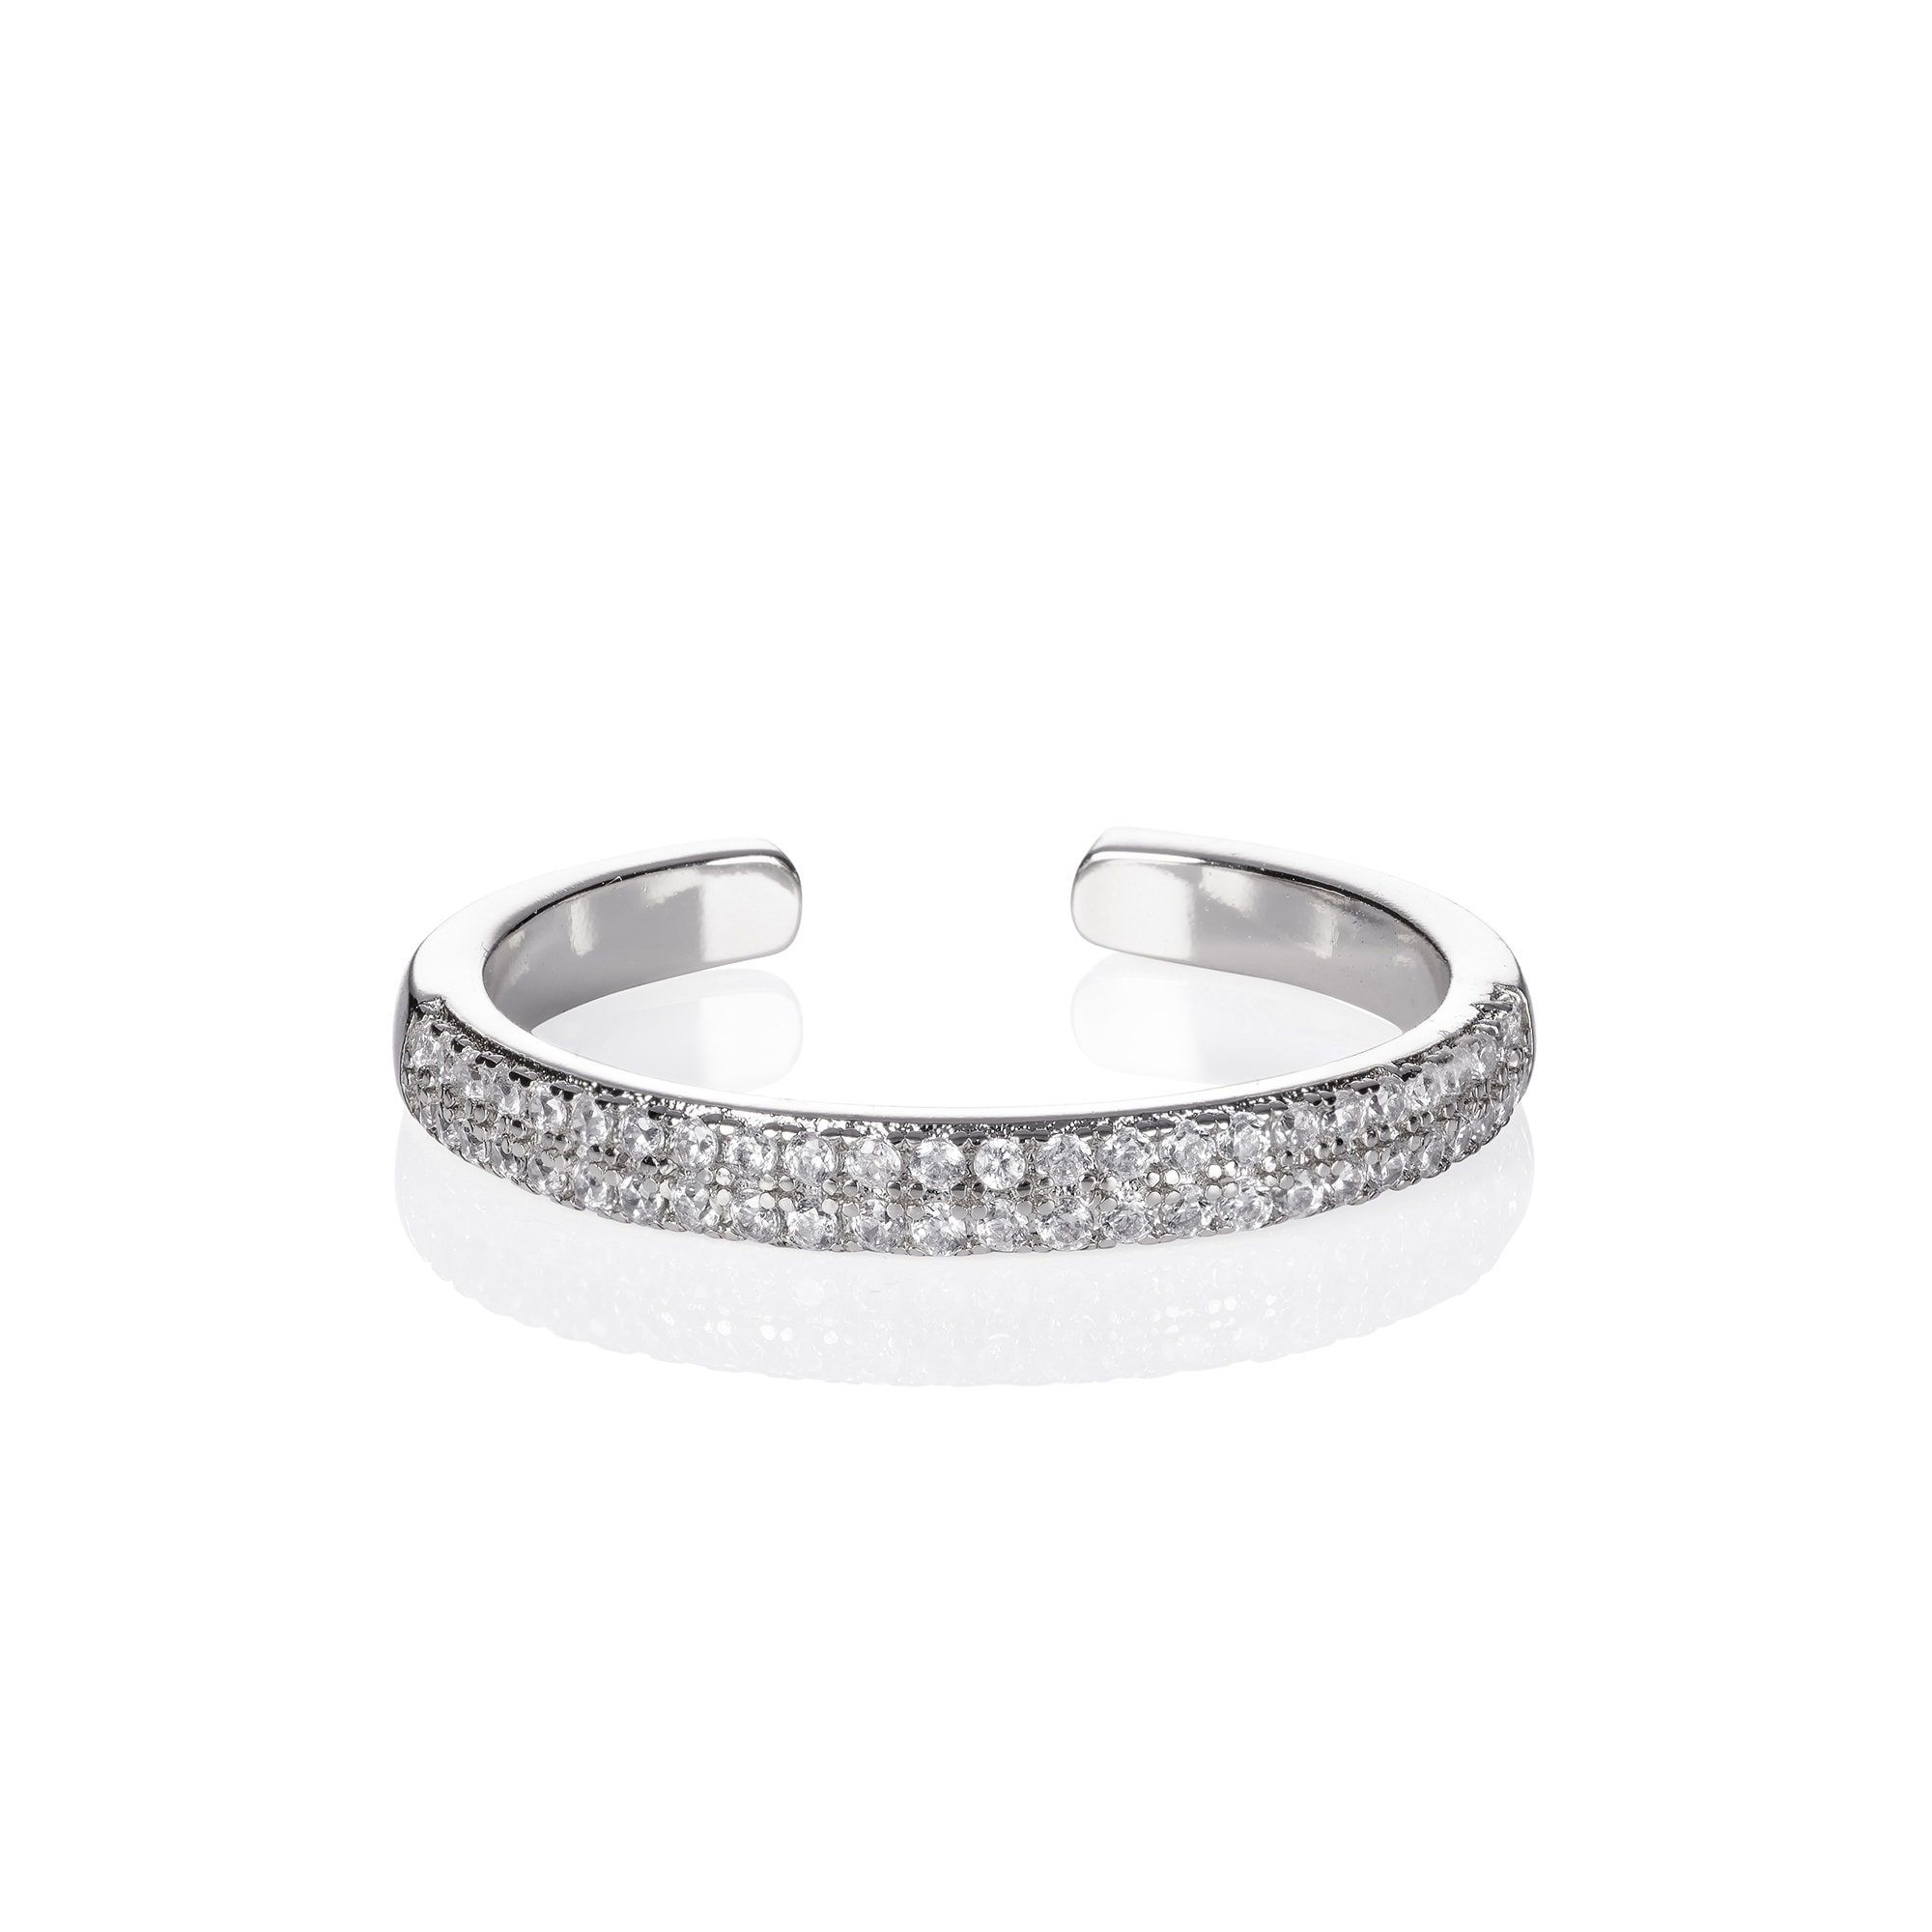 Features * Ajdjustable open ring for women with Cubic Zirconia stones. Stylishly elegant this ring can be adjusted to be worn on any finger and can be stacked with other rings from this collection * 2.5mm wide adjustable band rings for women * Open ring made from rhodium plated brass * Stylish rings for women, nickel-free and lead-free high-quality fashion jewellery Description ★ This adjustable open ring for women is striking to wear every day. This ring can be adjusted to any size and can also